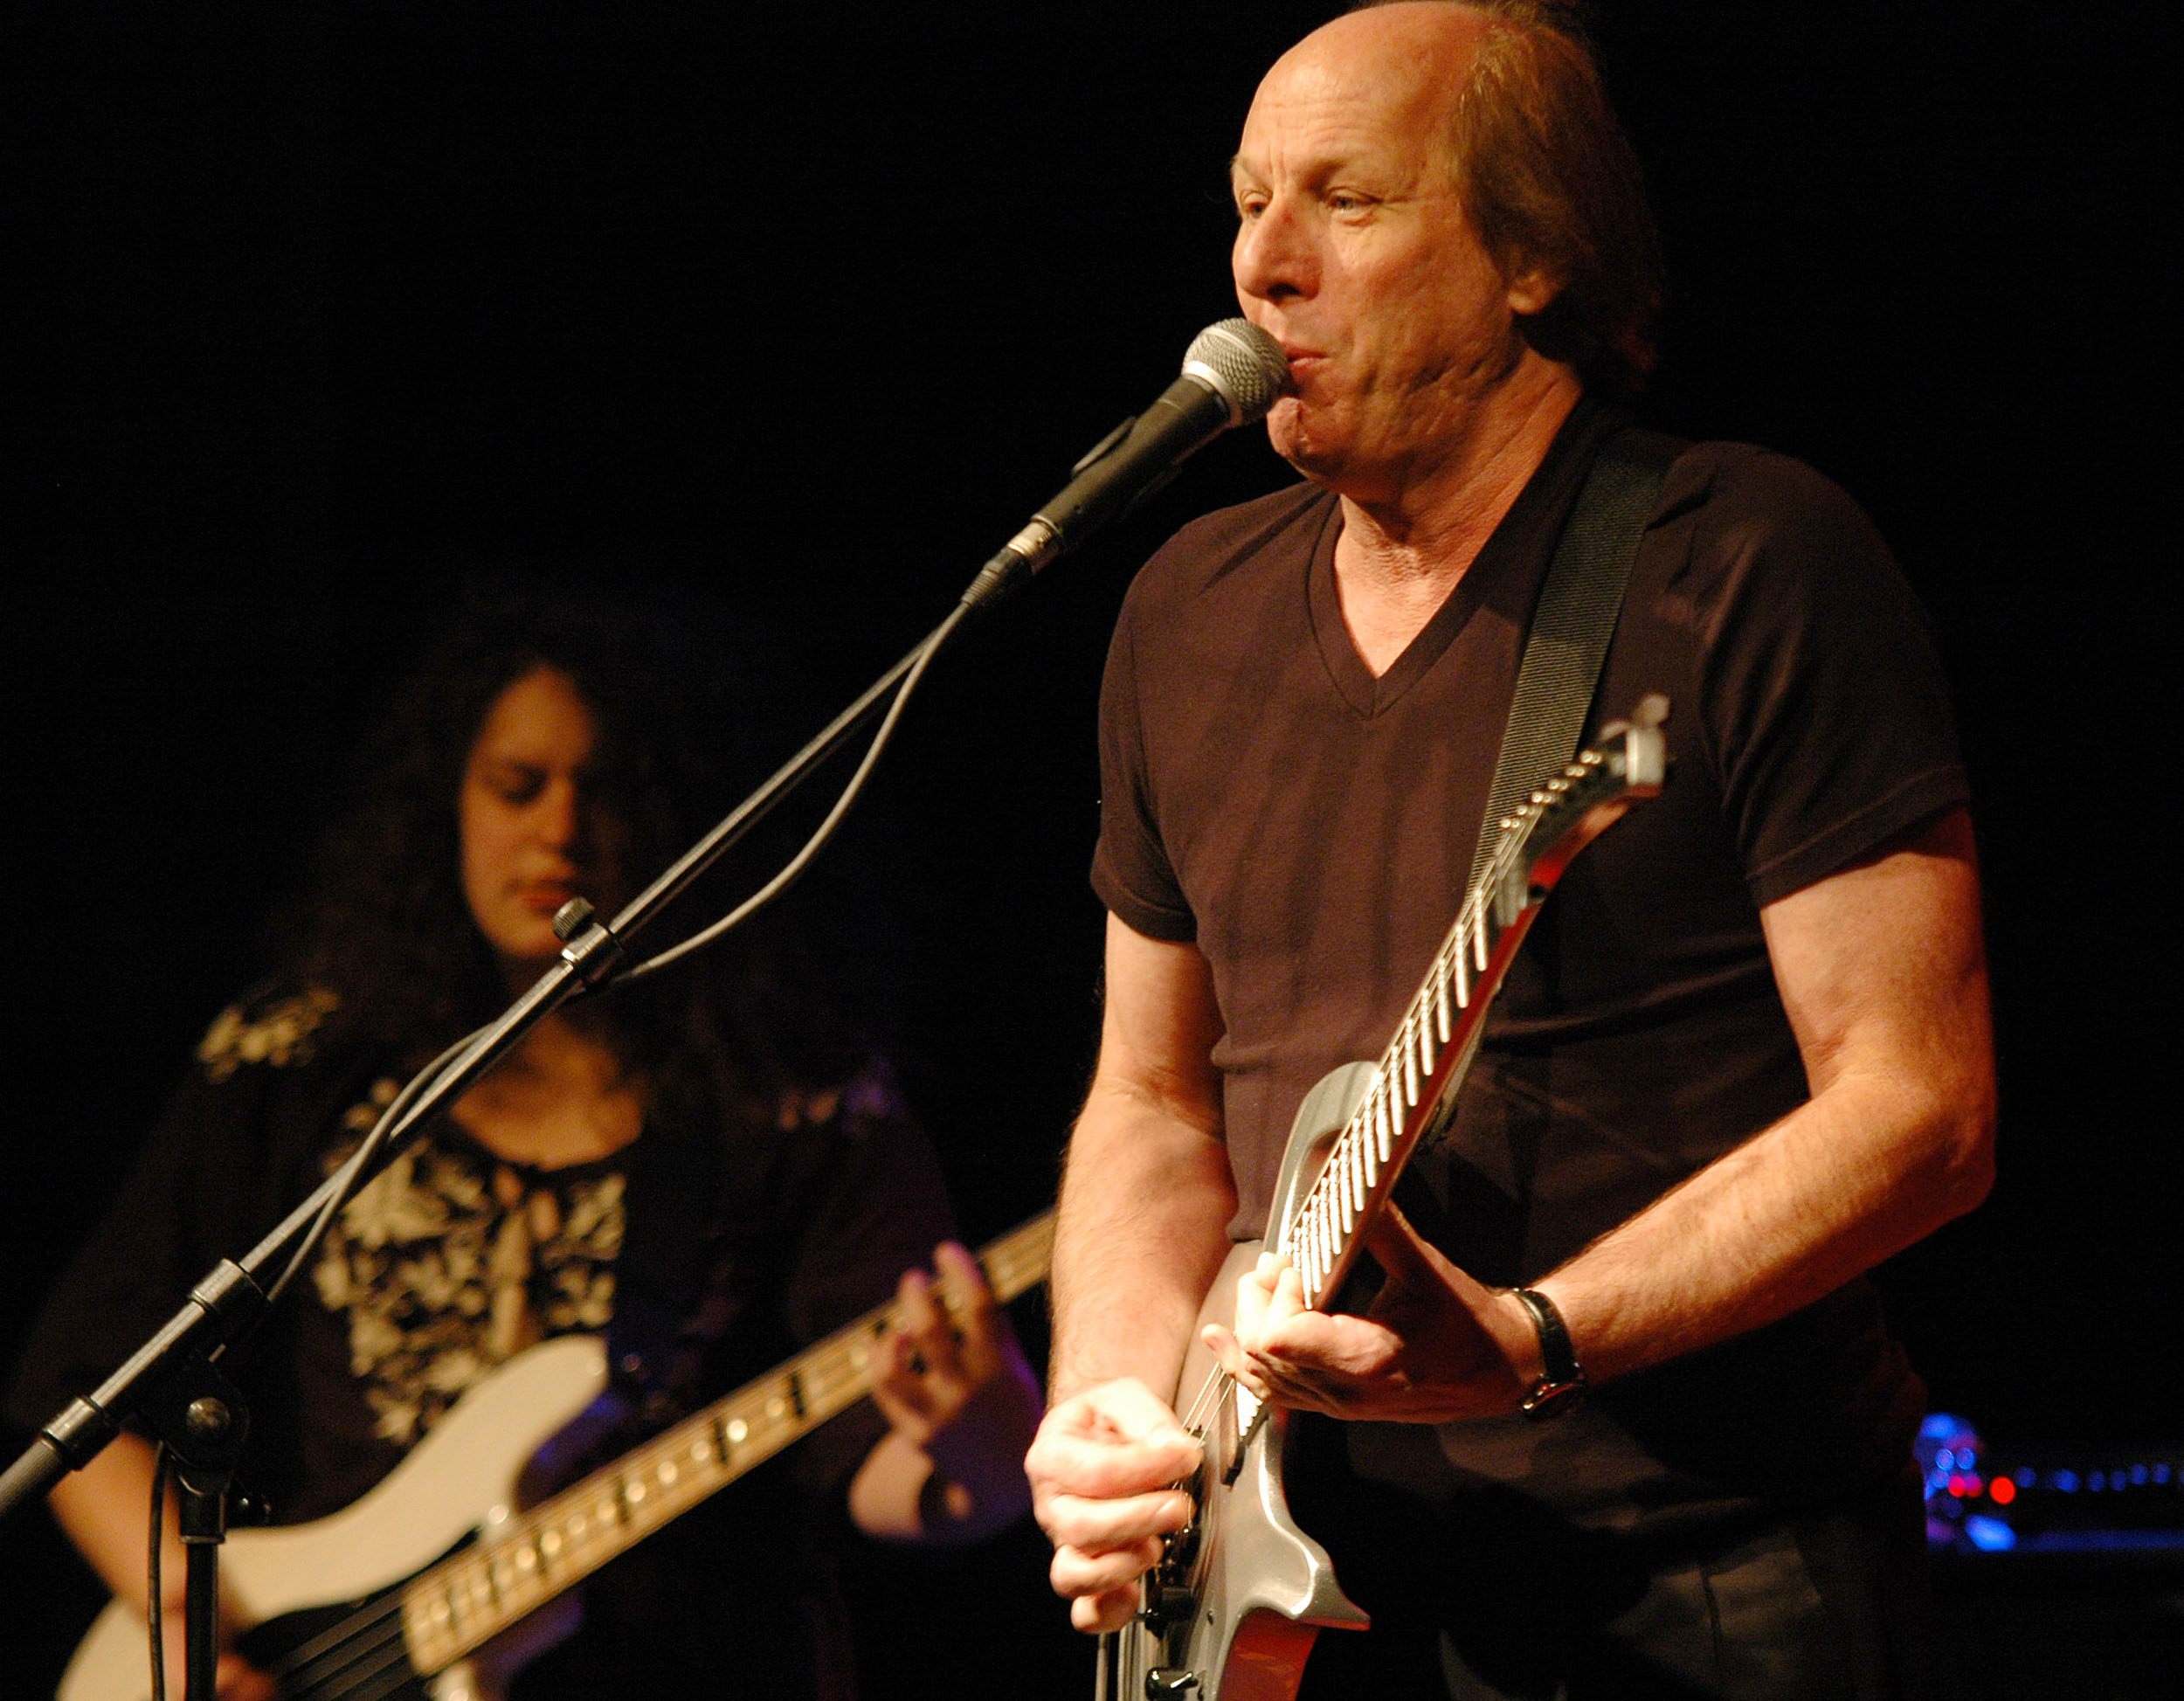 Julie Slick and Adrian Belew, Performing with Power Trio at Enjoy Jazz 2010